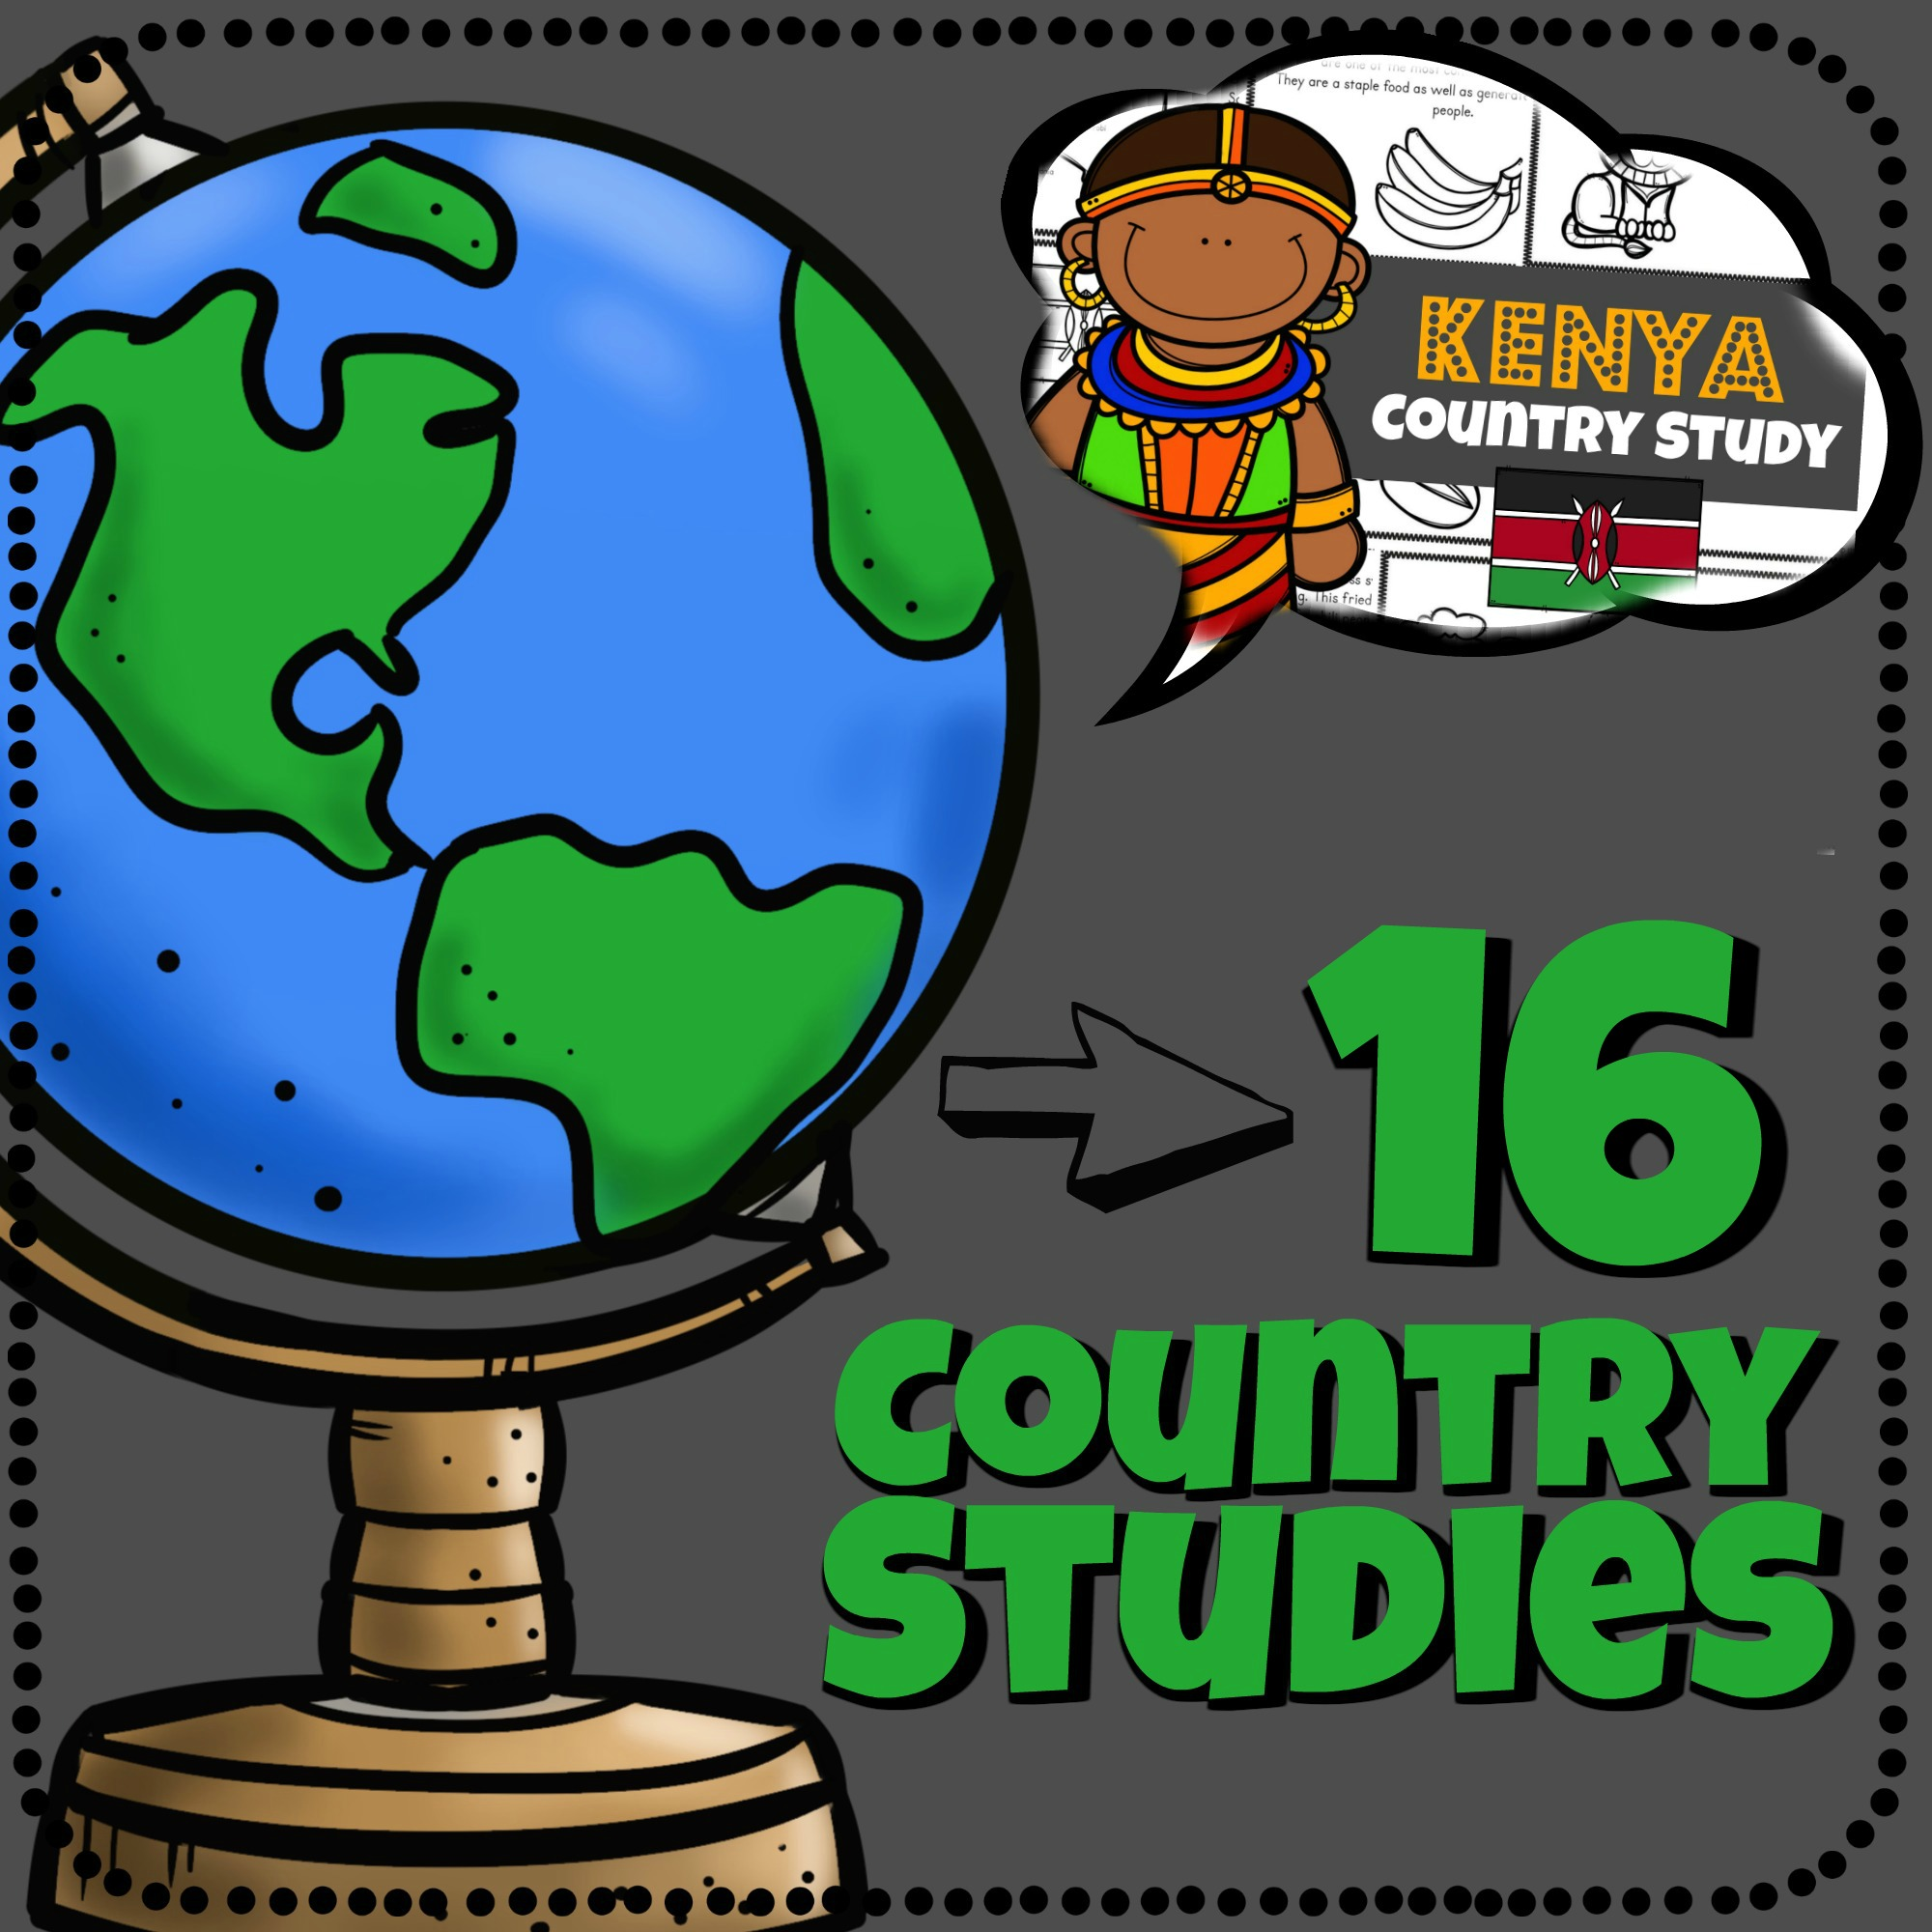 16 Country Stu S For Kids